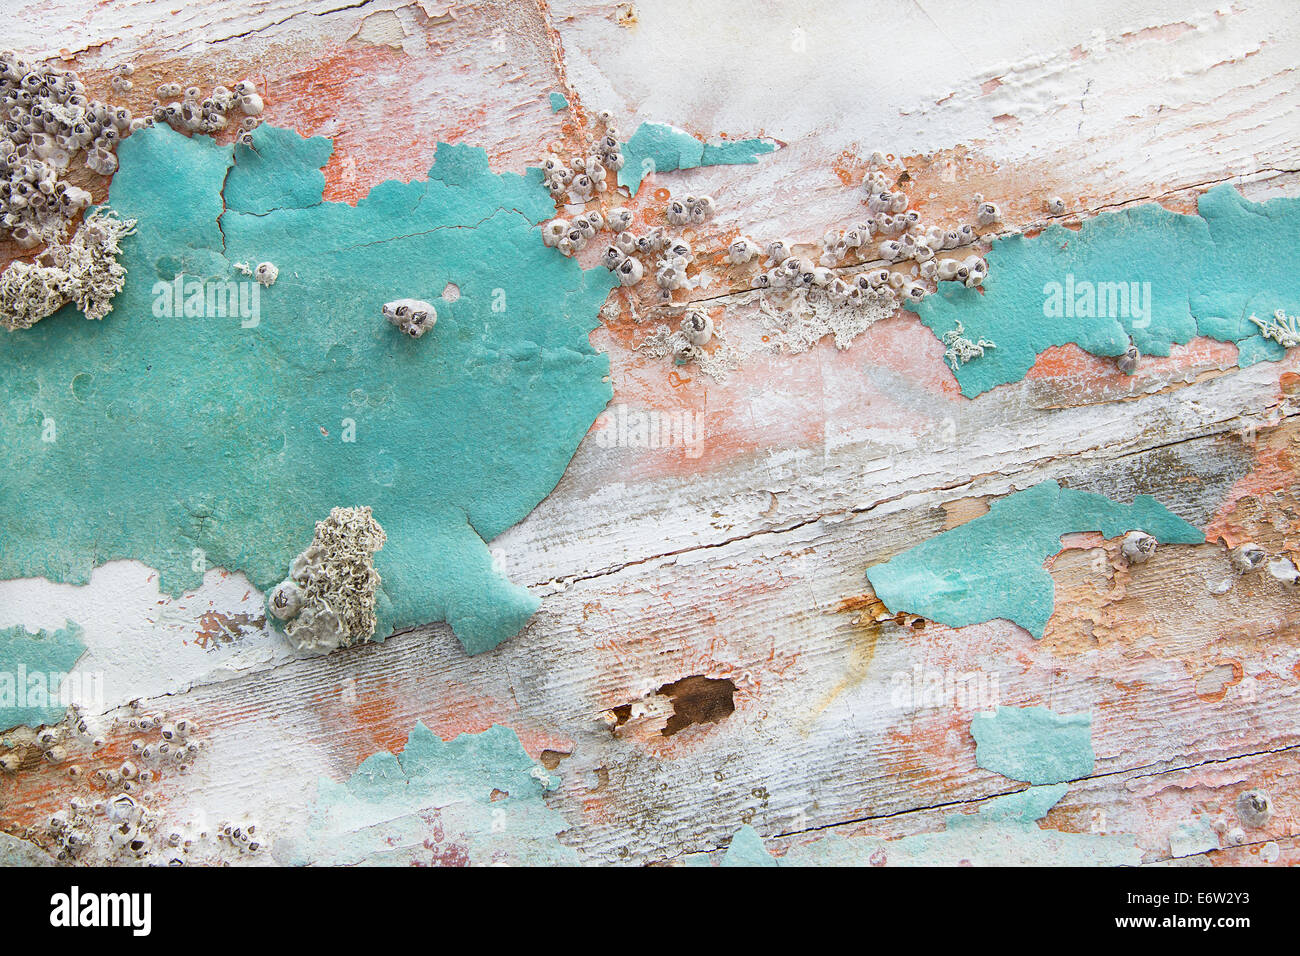 Old Wooden Shabby Chic Background With Aged Calcification Of Mussels And Fossils In Turquoise Pastel Colors